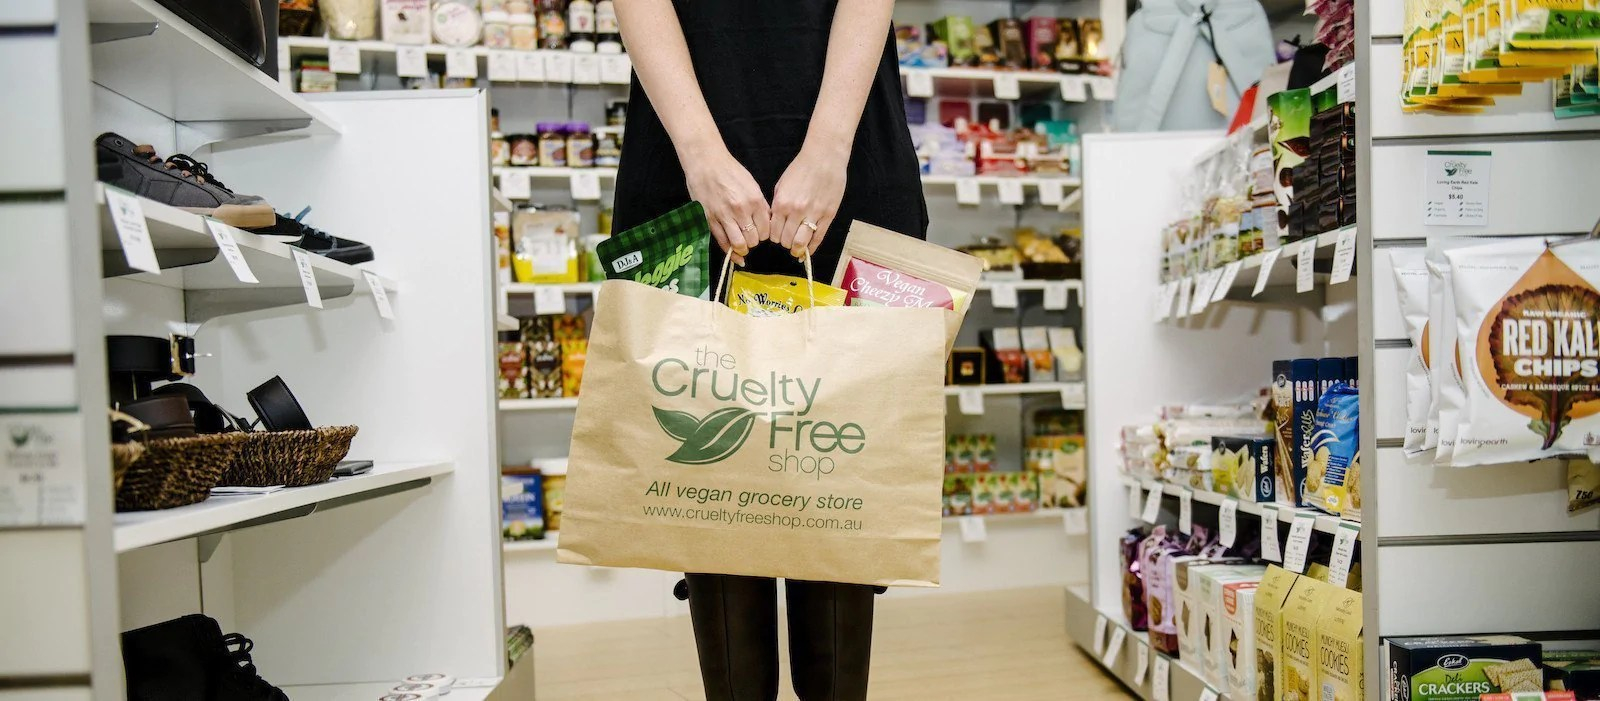 Shopping Com Au The Cruelty Free Shop Vegan Products